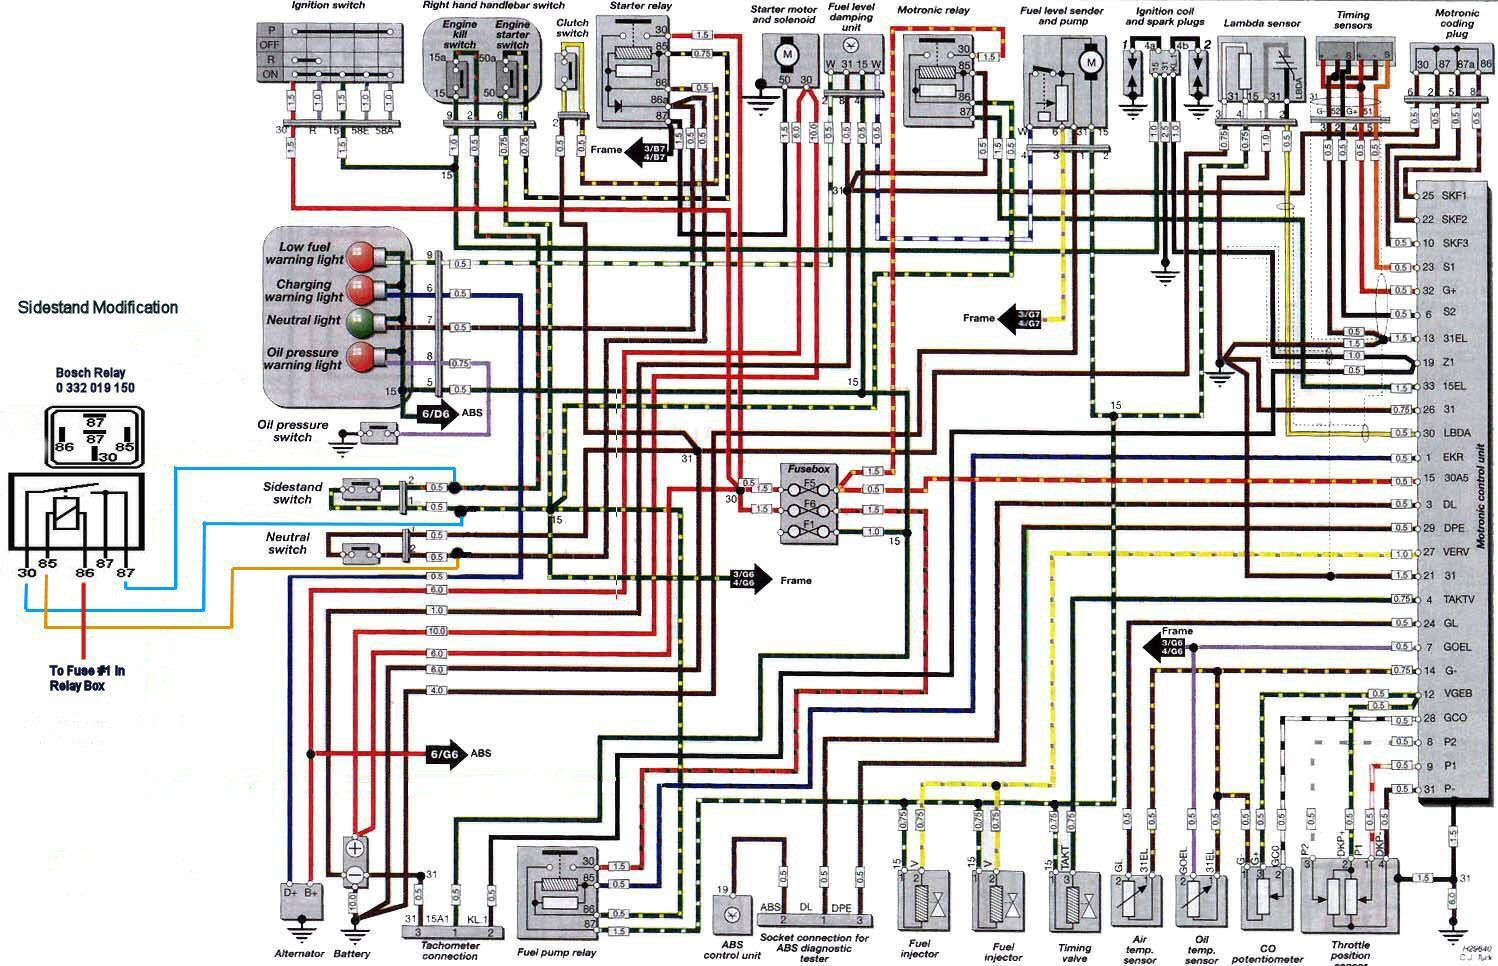 Bmw r1150r electrical wiring    diagram     1   bmv   Electrical wiring    diagram     BMW  Electrical Wiring